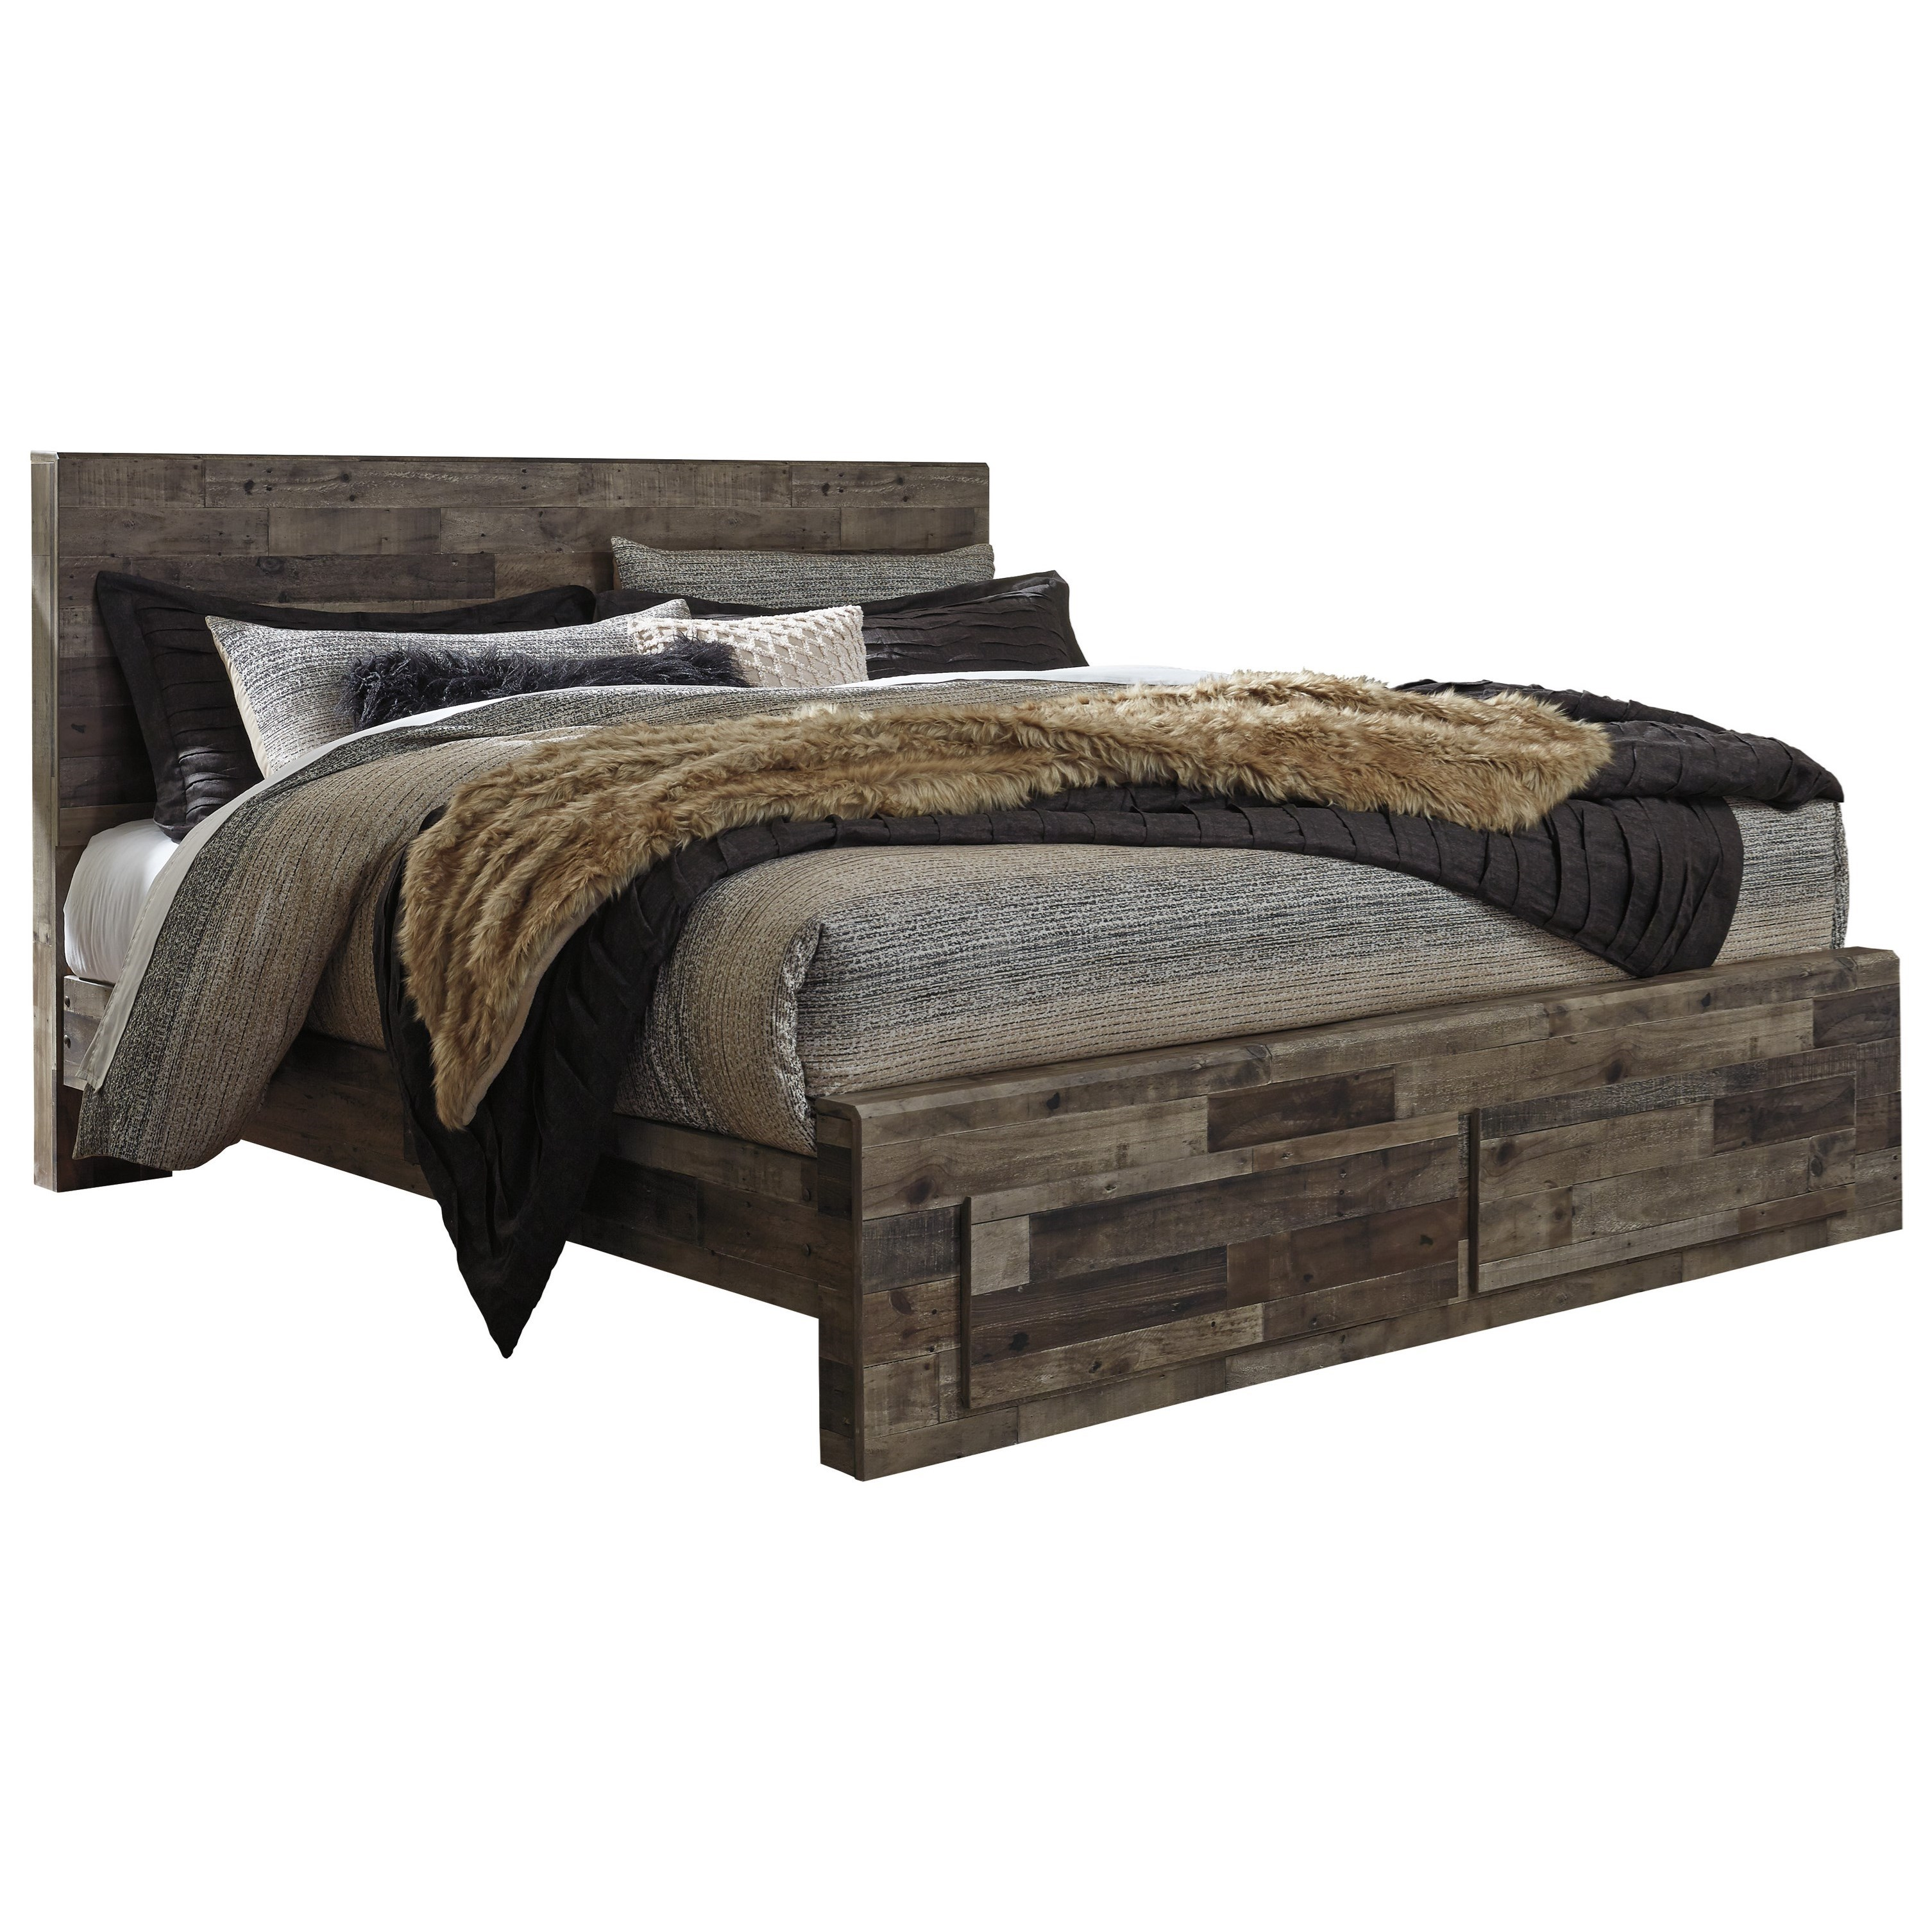 benchcraft by ashley derekson rustic modern king storage bed with 2 footboard drawers royal. Black Bedroom Furniture Sets. Home Design Ideas